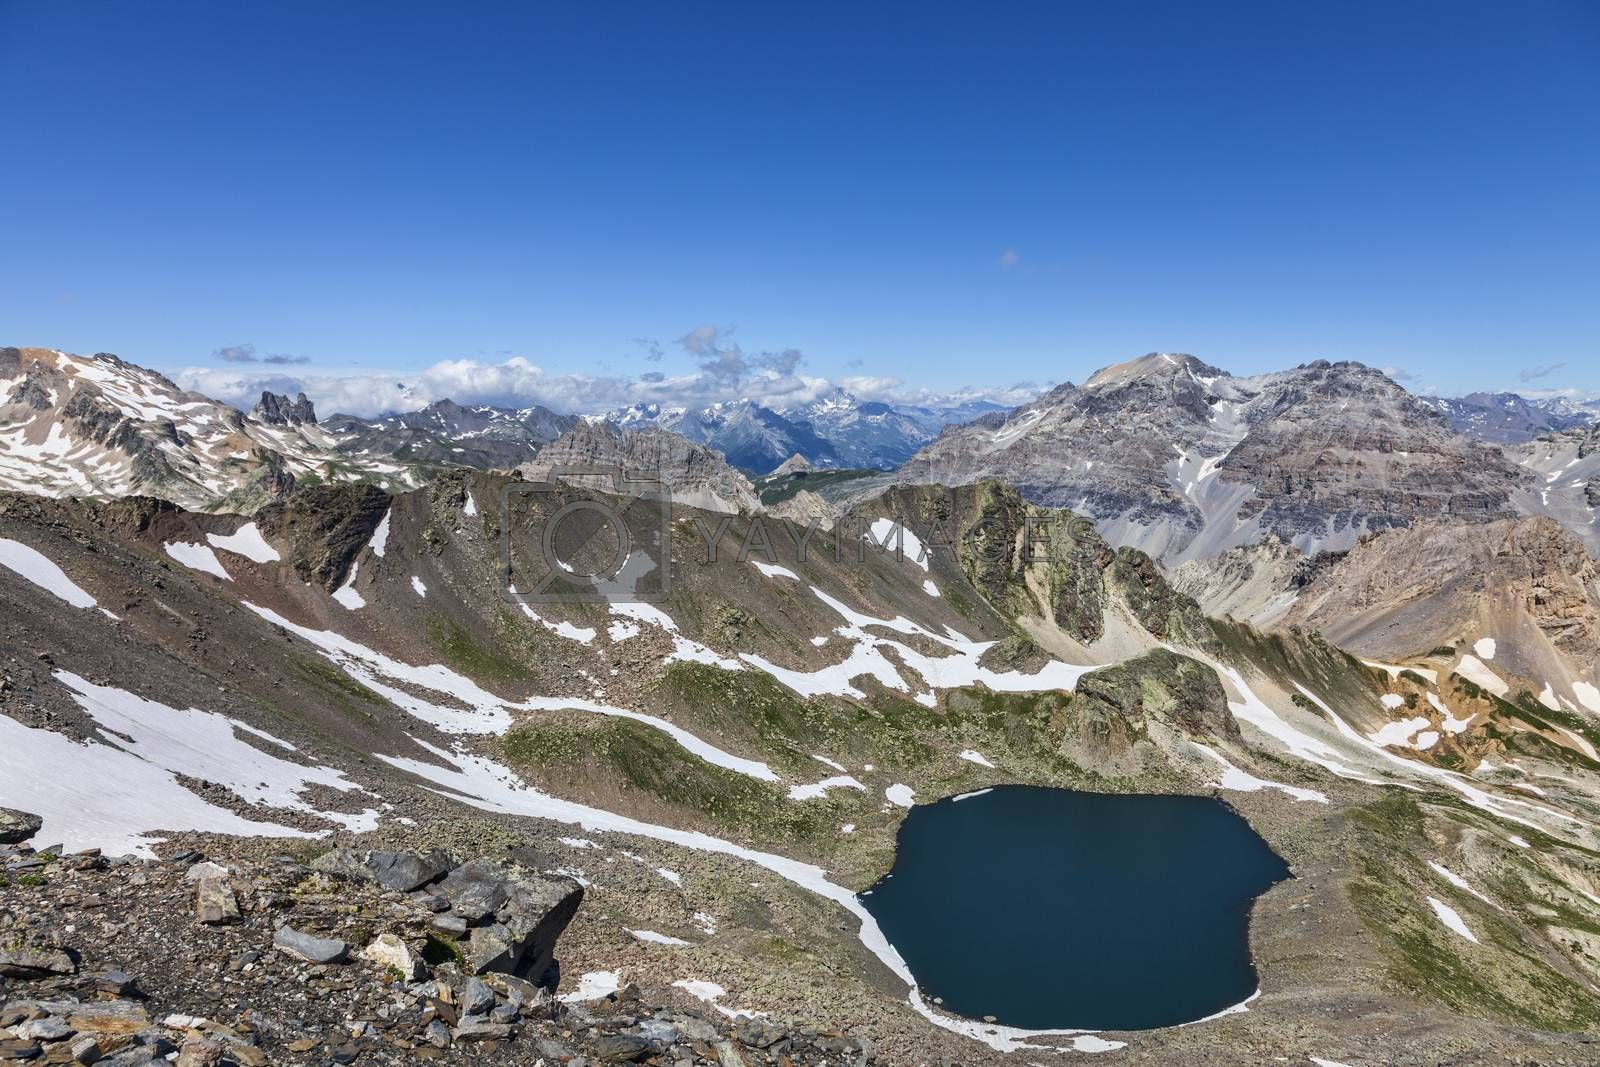 Image of the Lac Blanc (White Lake) located at 2699 m on Vallee de la Claree (Claree Valley) in Hautes Alpes department in France. The place is located in one of the wildest hiking trail in the high French Alps.